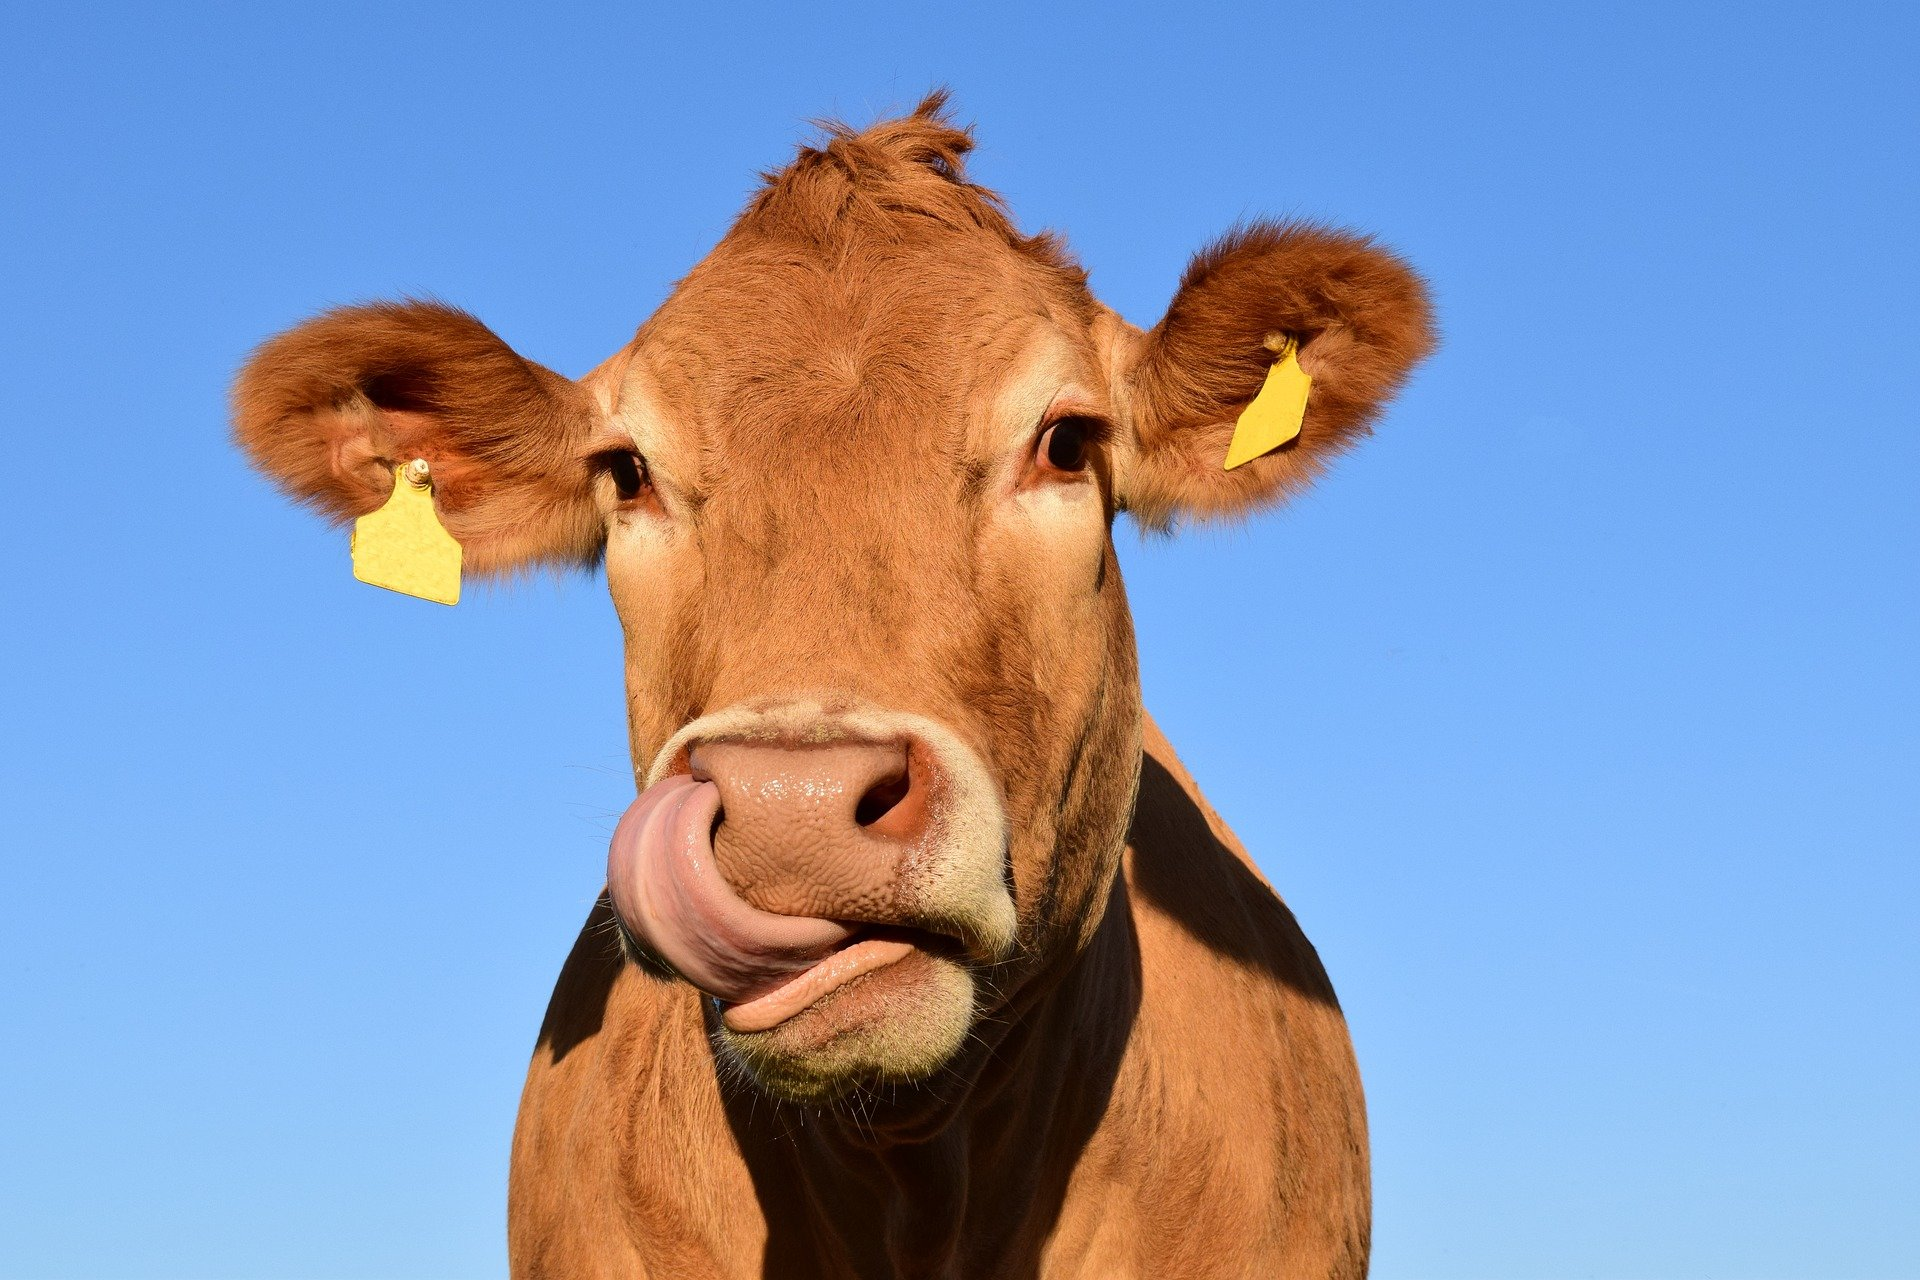 cows found to be willing to work hard to gain access to a grooming brush